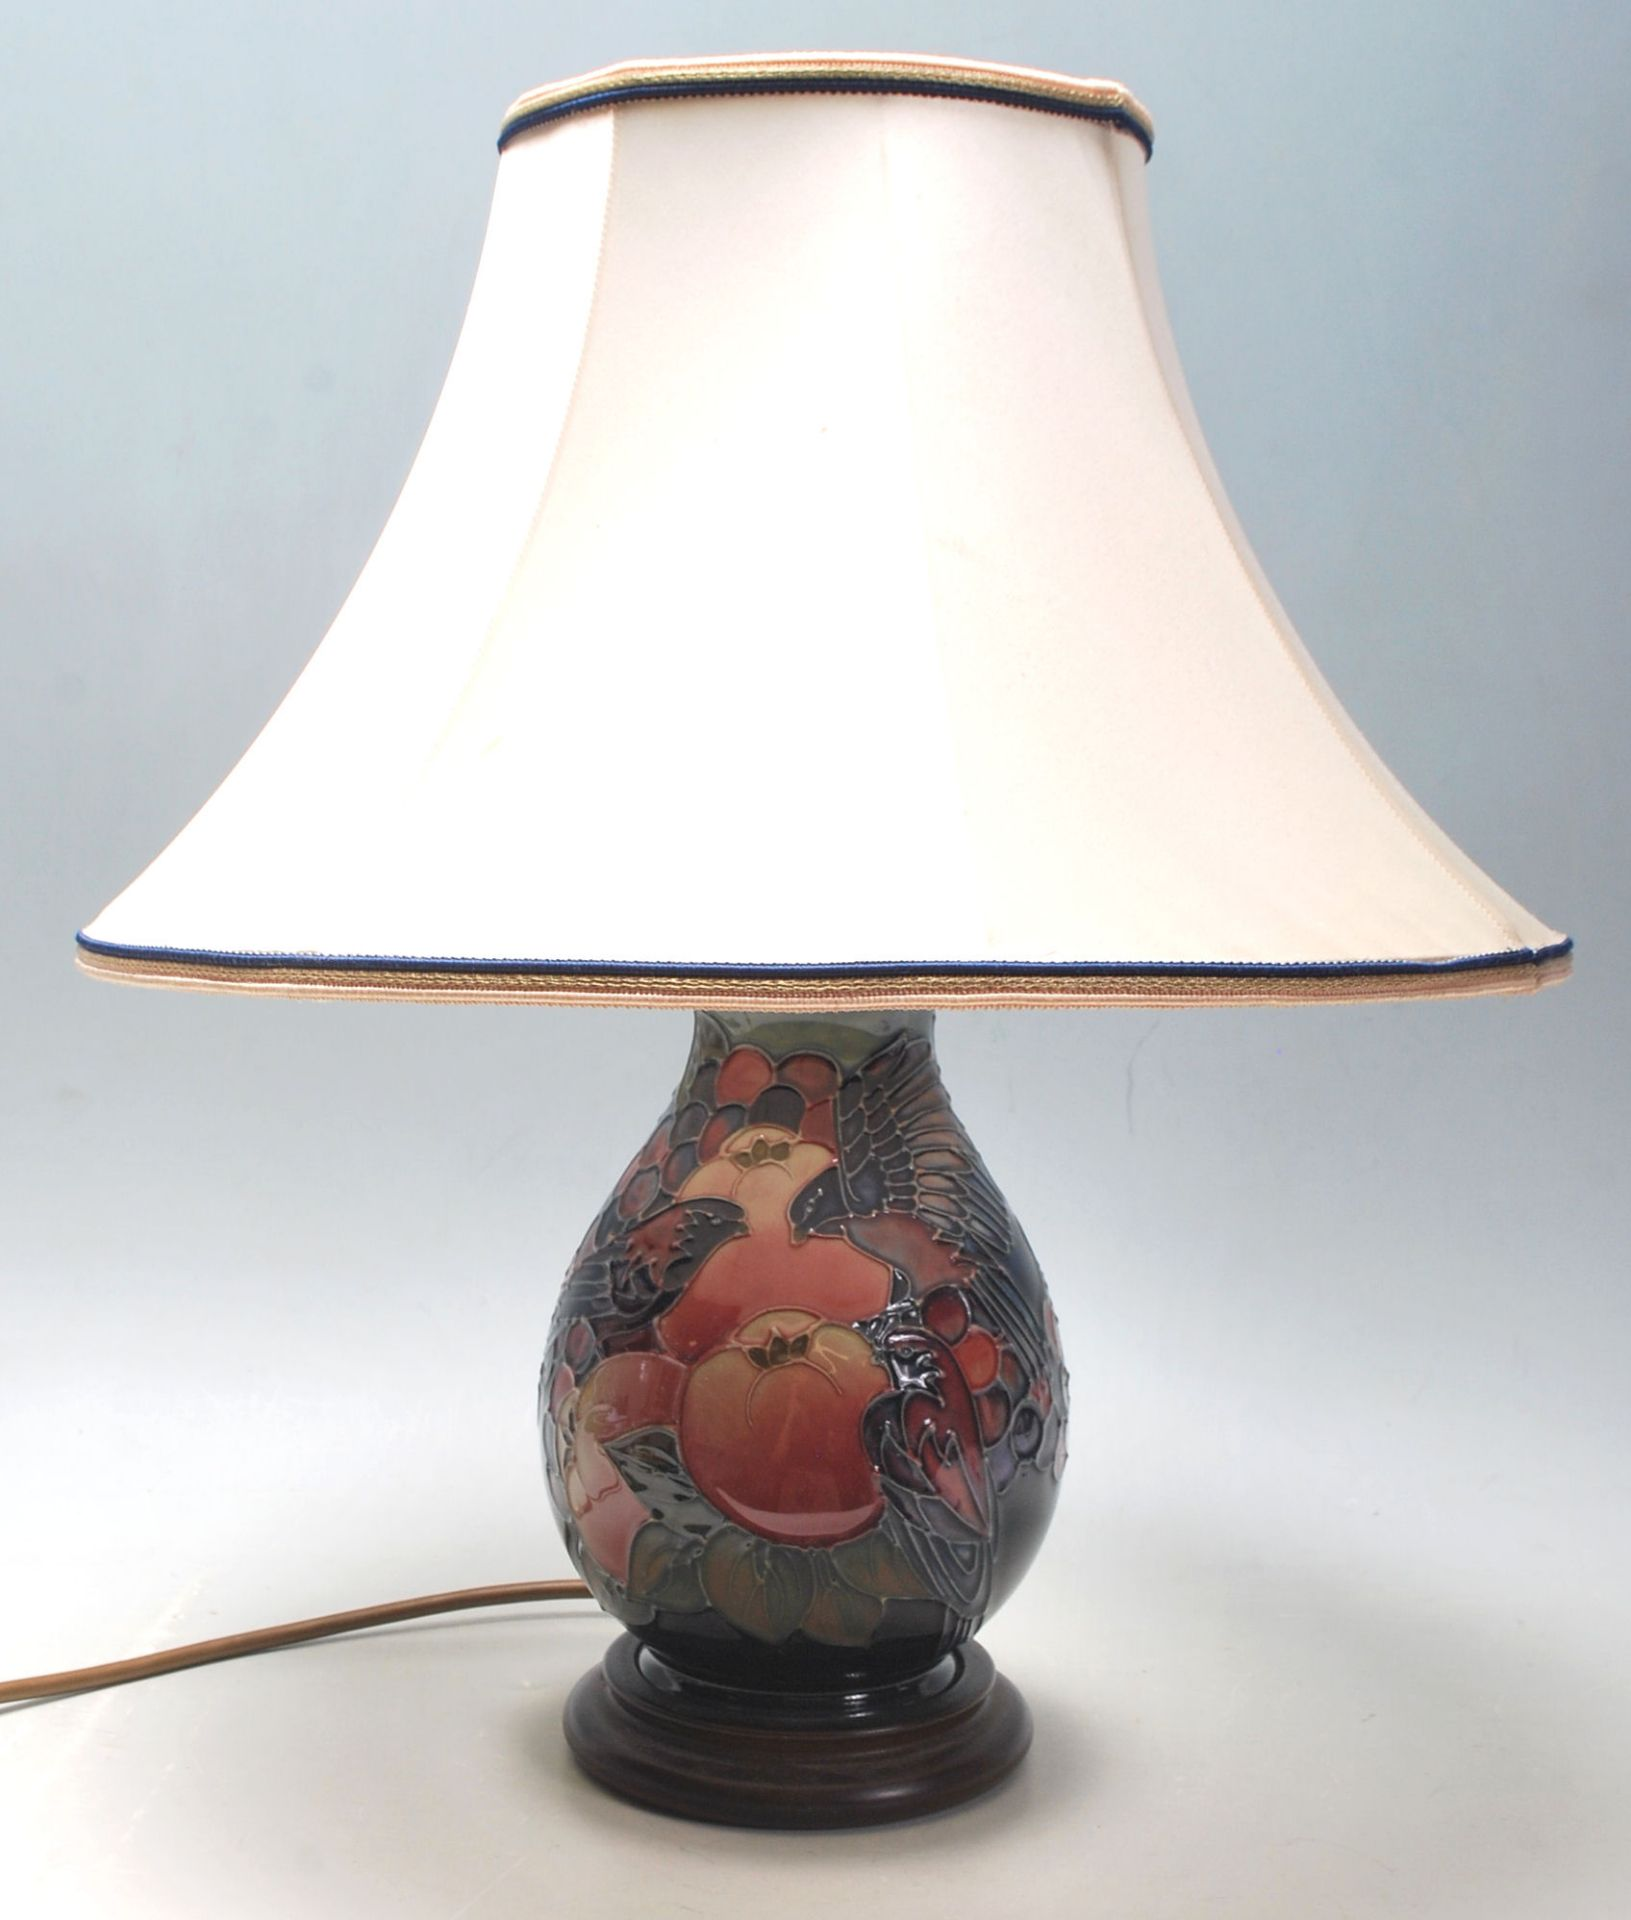 Los 2 - A 20th Century Moorcroft finches pattern table lamp of baluster form being decorated with tube lined